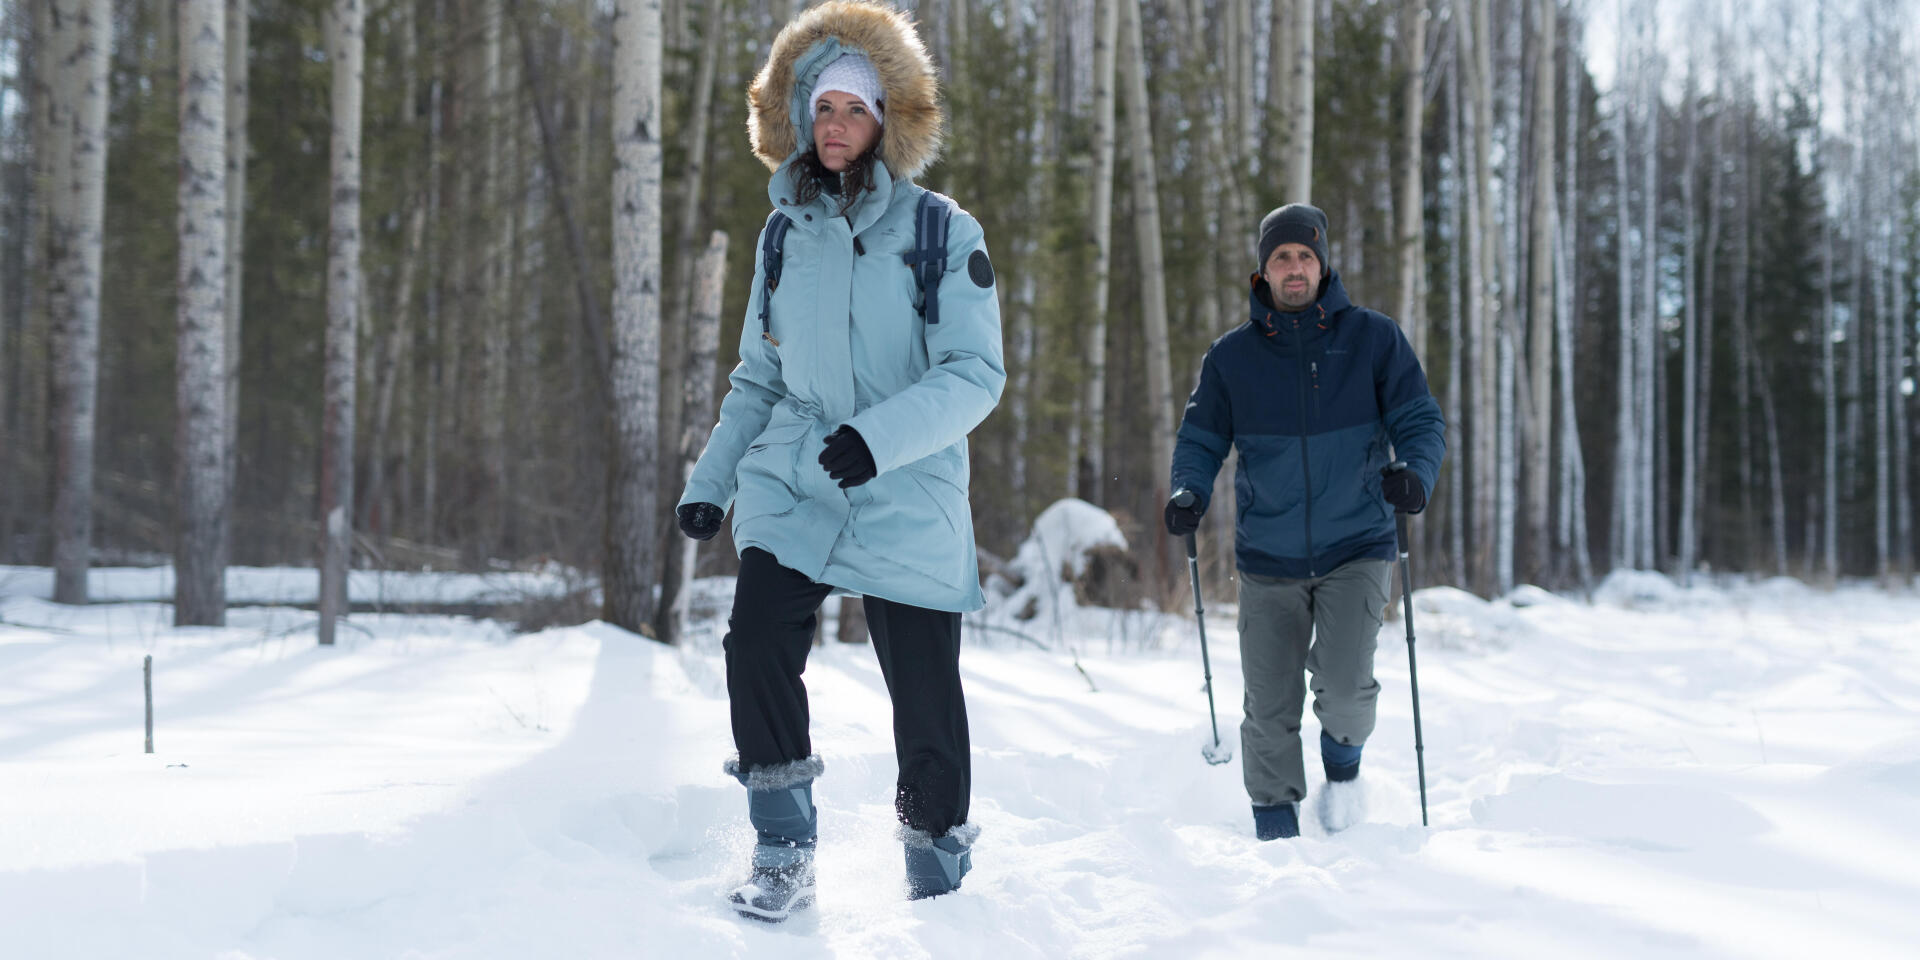 Hiking on snow: high or low boots?